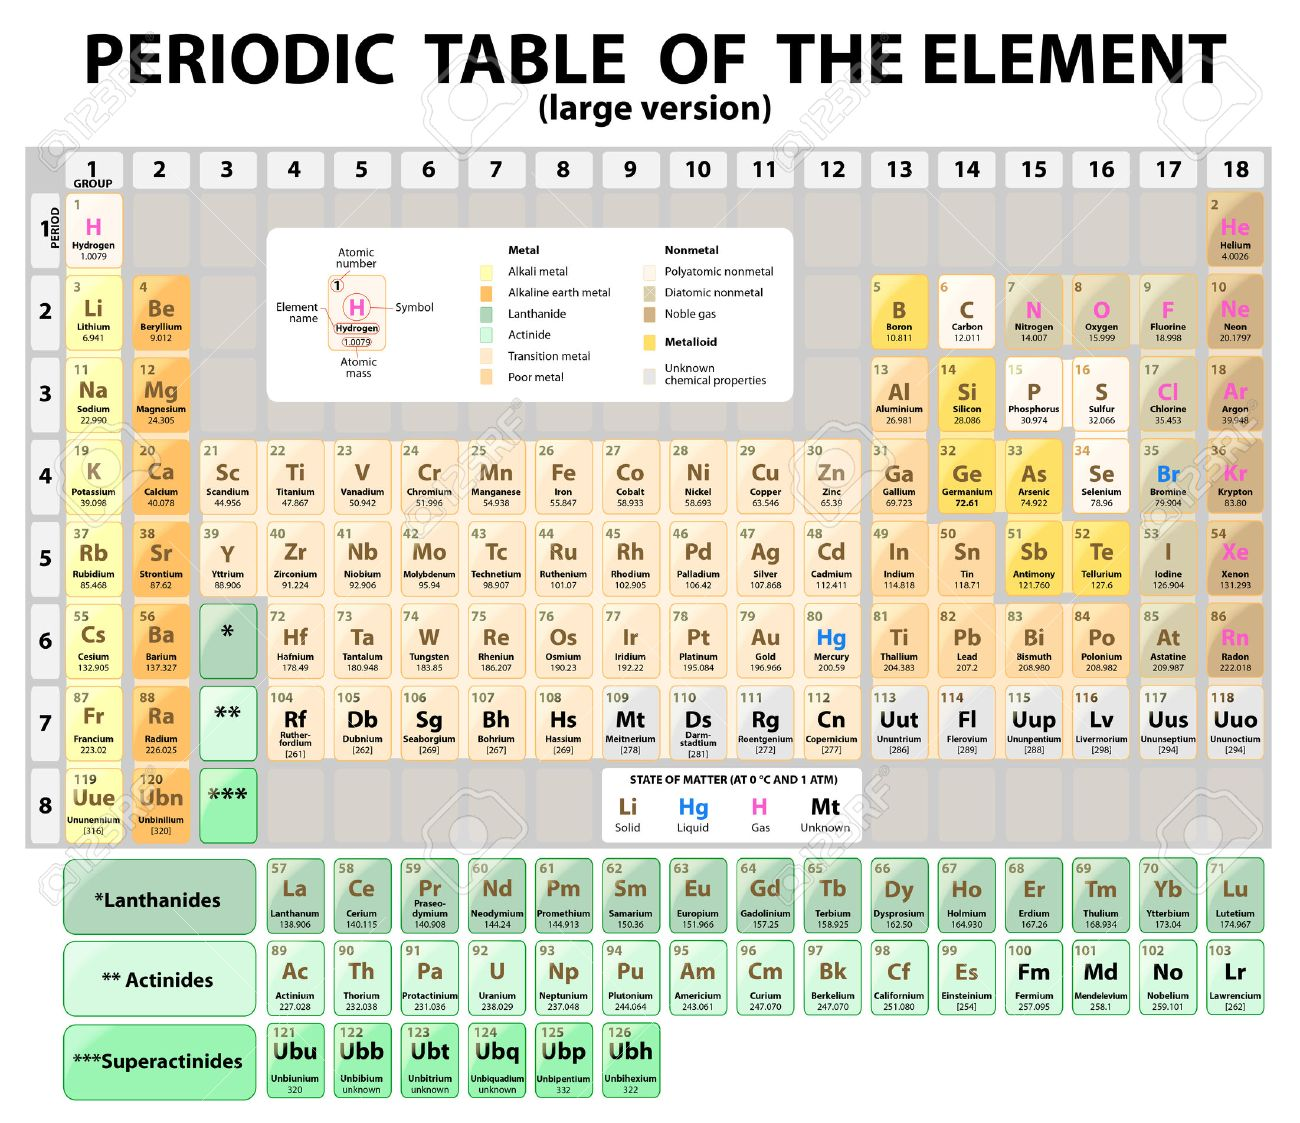 Periodic table of the elements with atomic number symbol and periodic table of the elements with atomic number symbol and weight large version urtaz Images